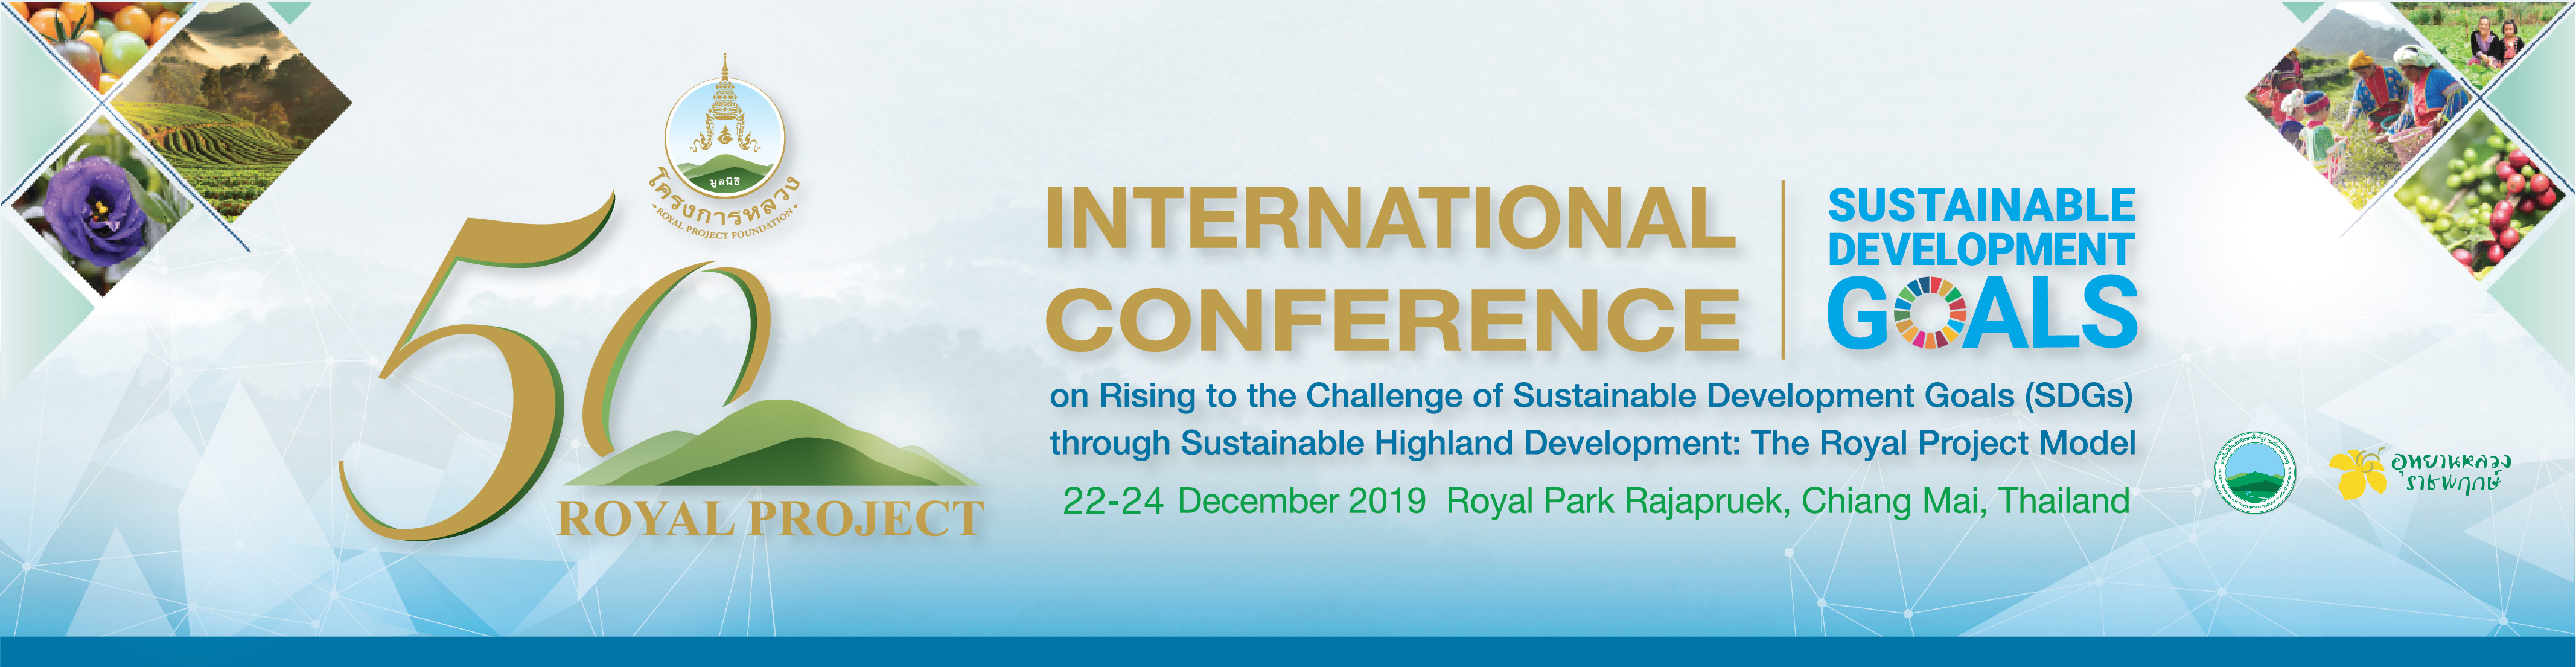 The International Conference on Rising to the Challenges of Sustainable Development Goals (SGDs) through Sustainable Highland Development